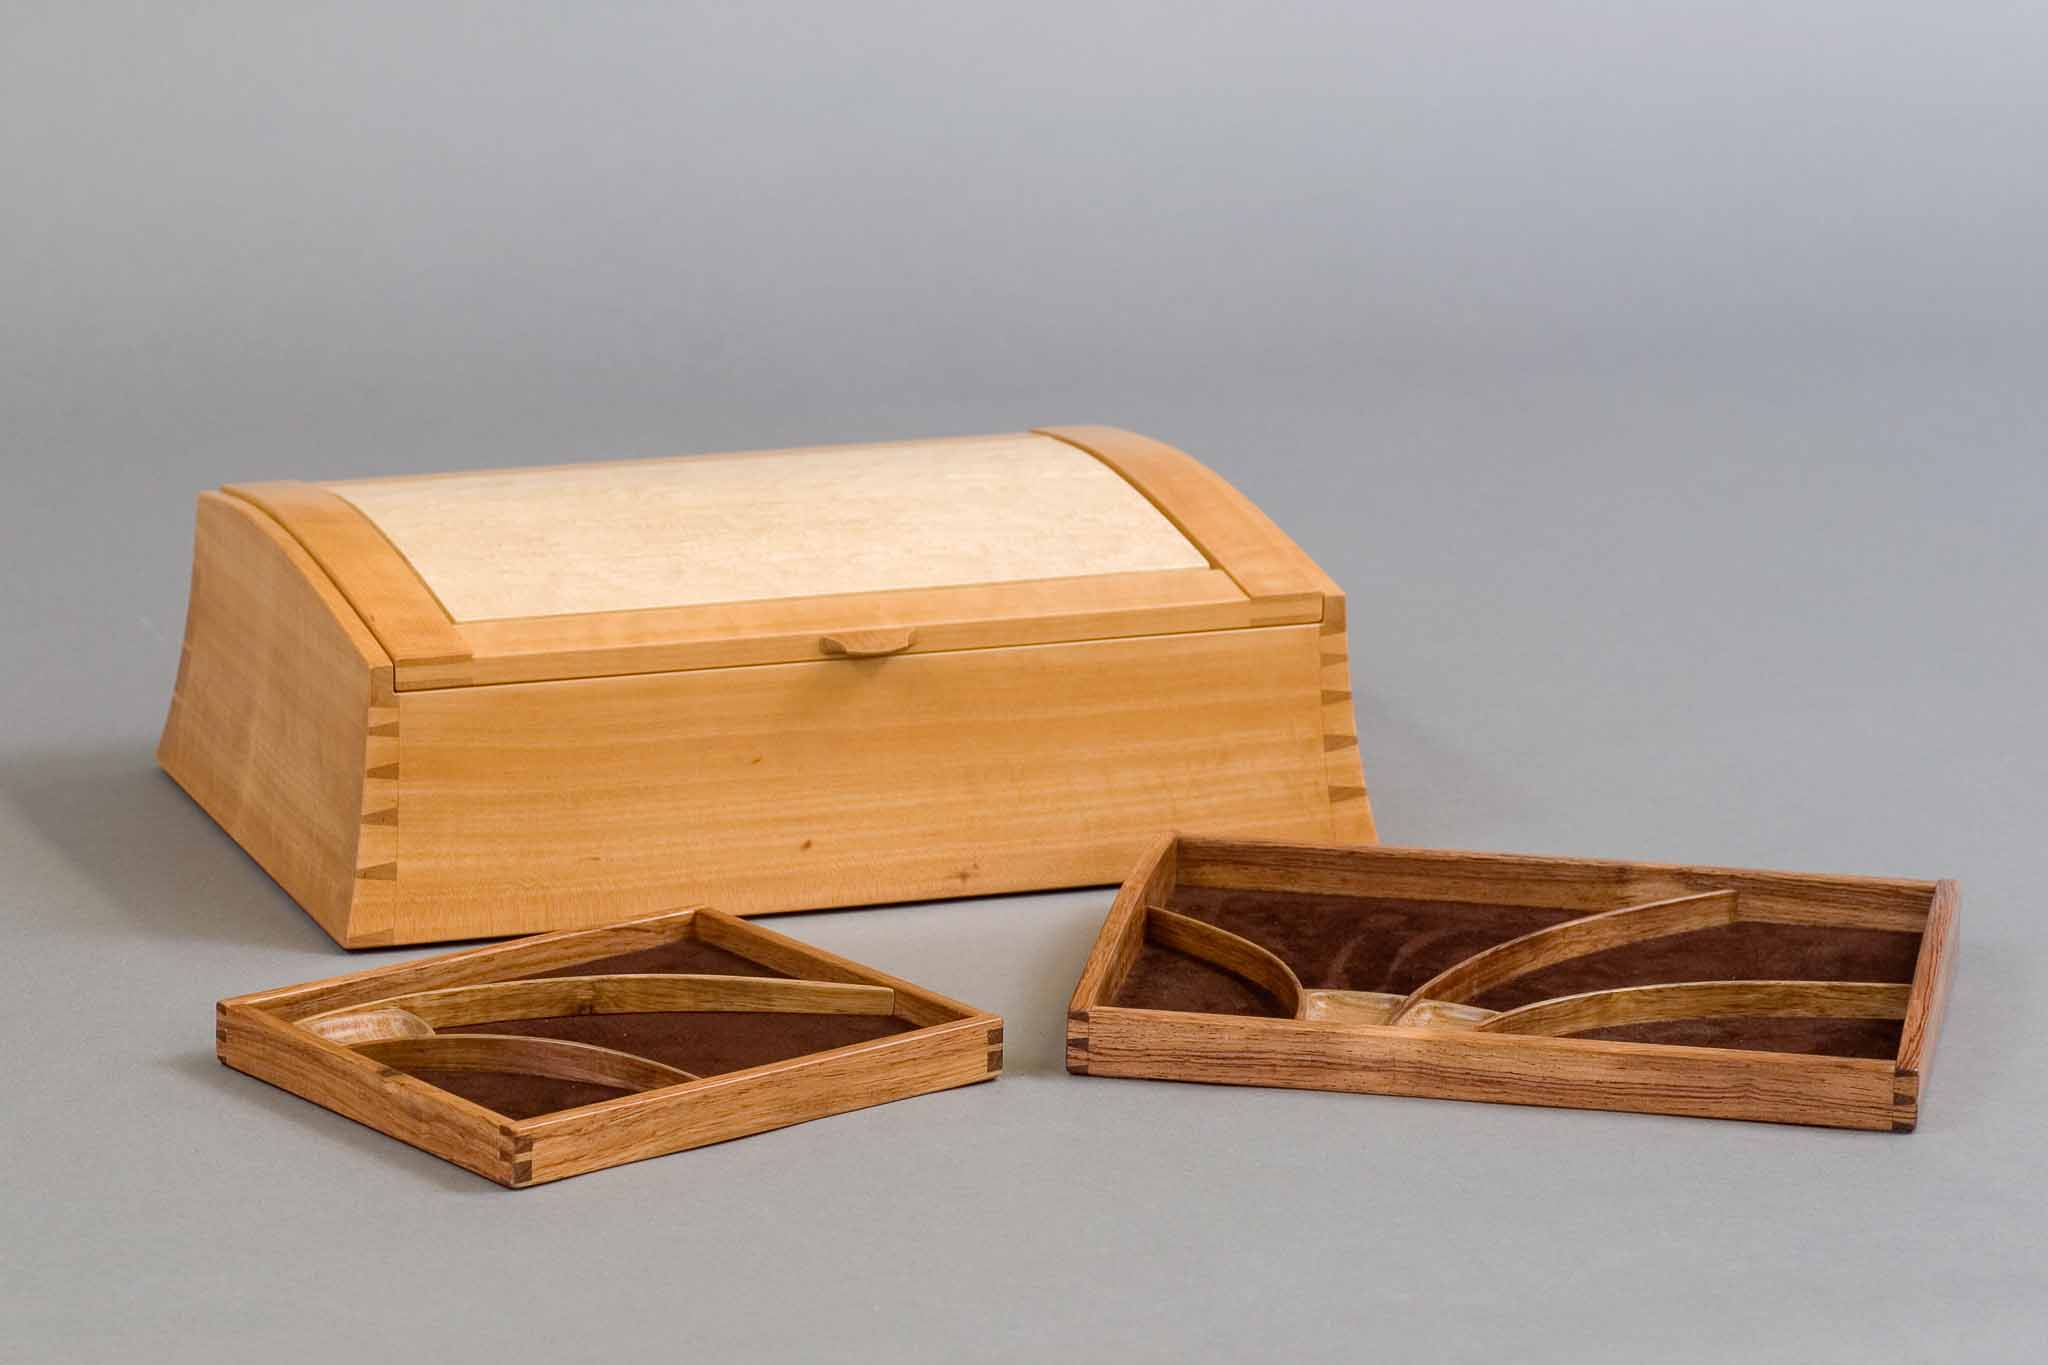 curved box